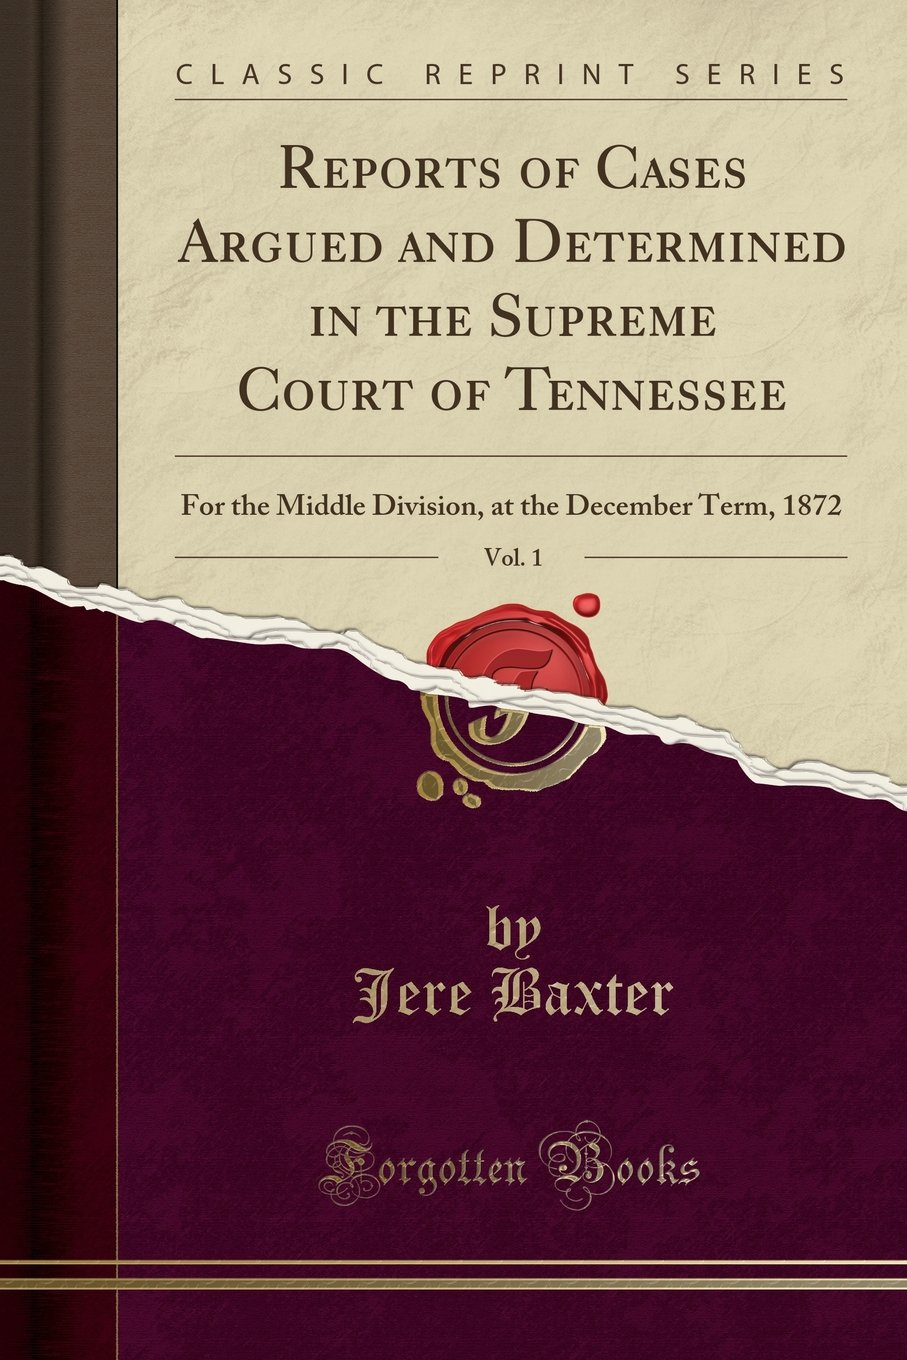 Read Online Reports of Cases Argued and Determined in the Supreme Court of Tennessee, Vol. 1: For the Middle Division, at the December Term, 1872 (Classic Reprint) pdf